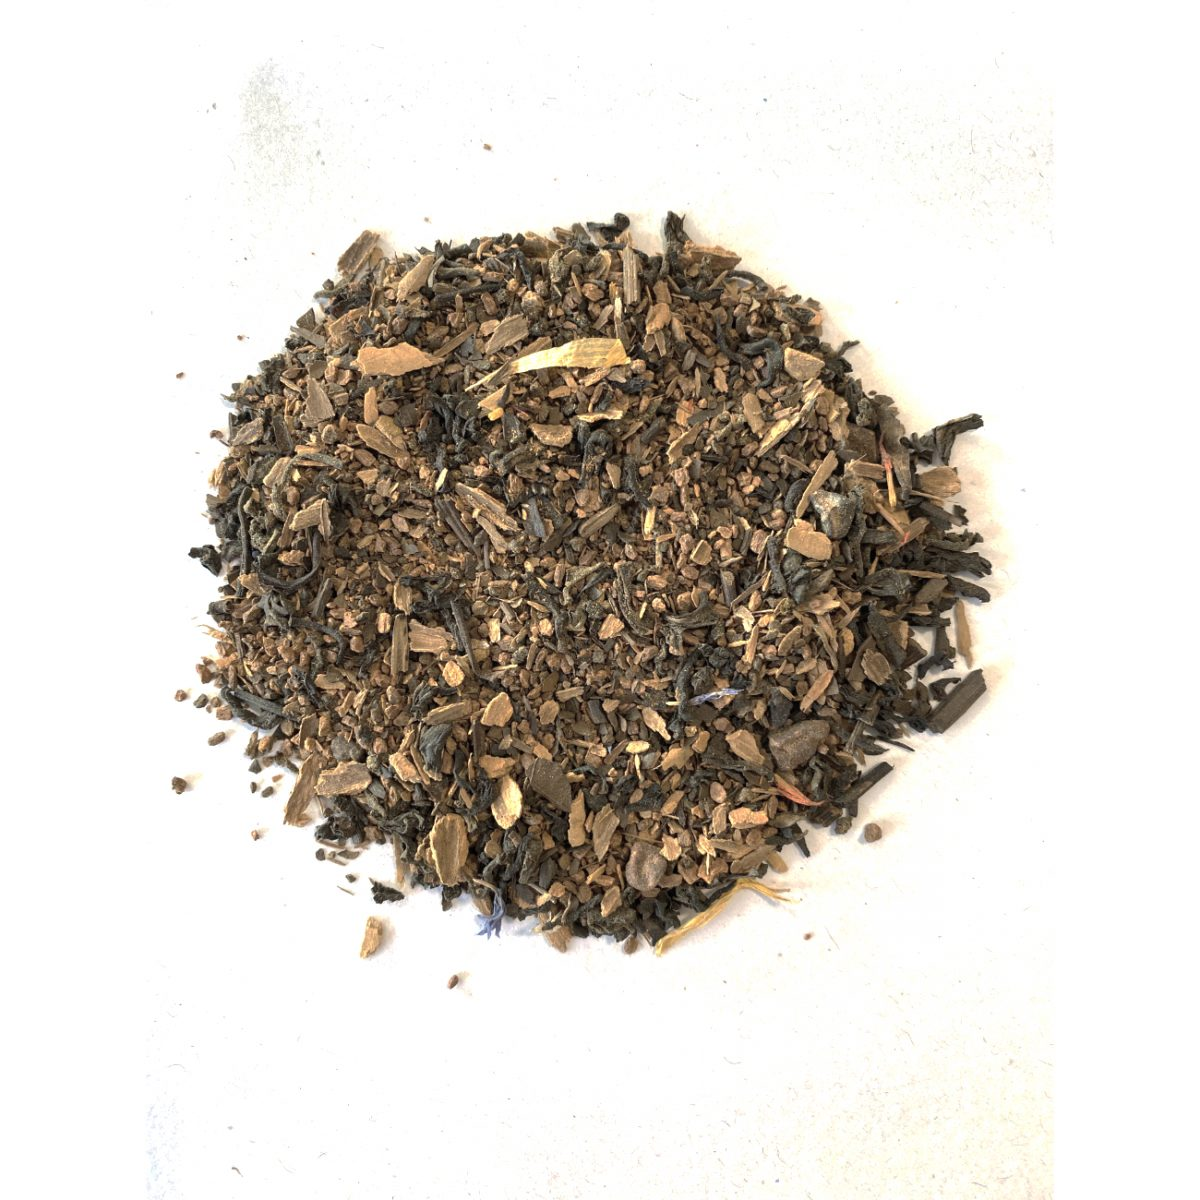 The most flavorful Cinnamon Tea we sell,,,,with a great blend of teas that are similar to coffee.